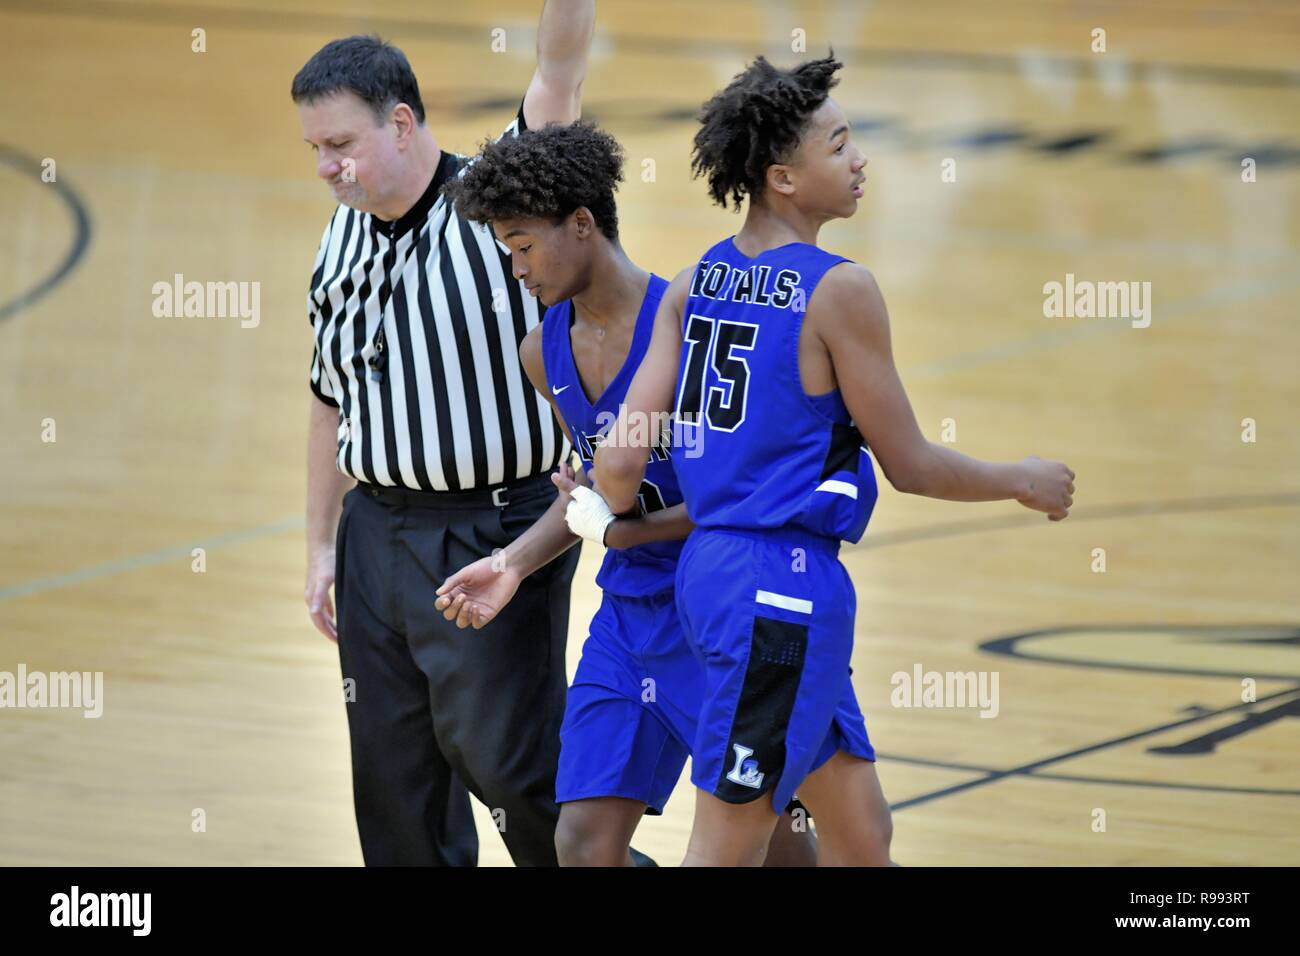 During a timeout a substitute player replaces a teammate on the court. - Stock Image